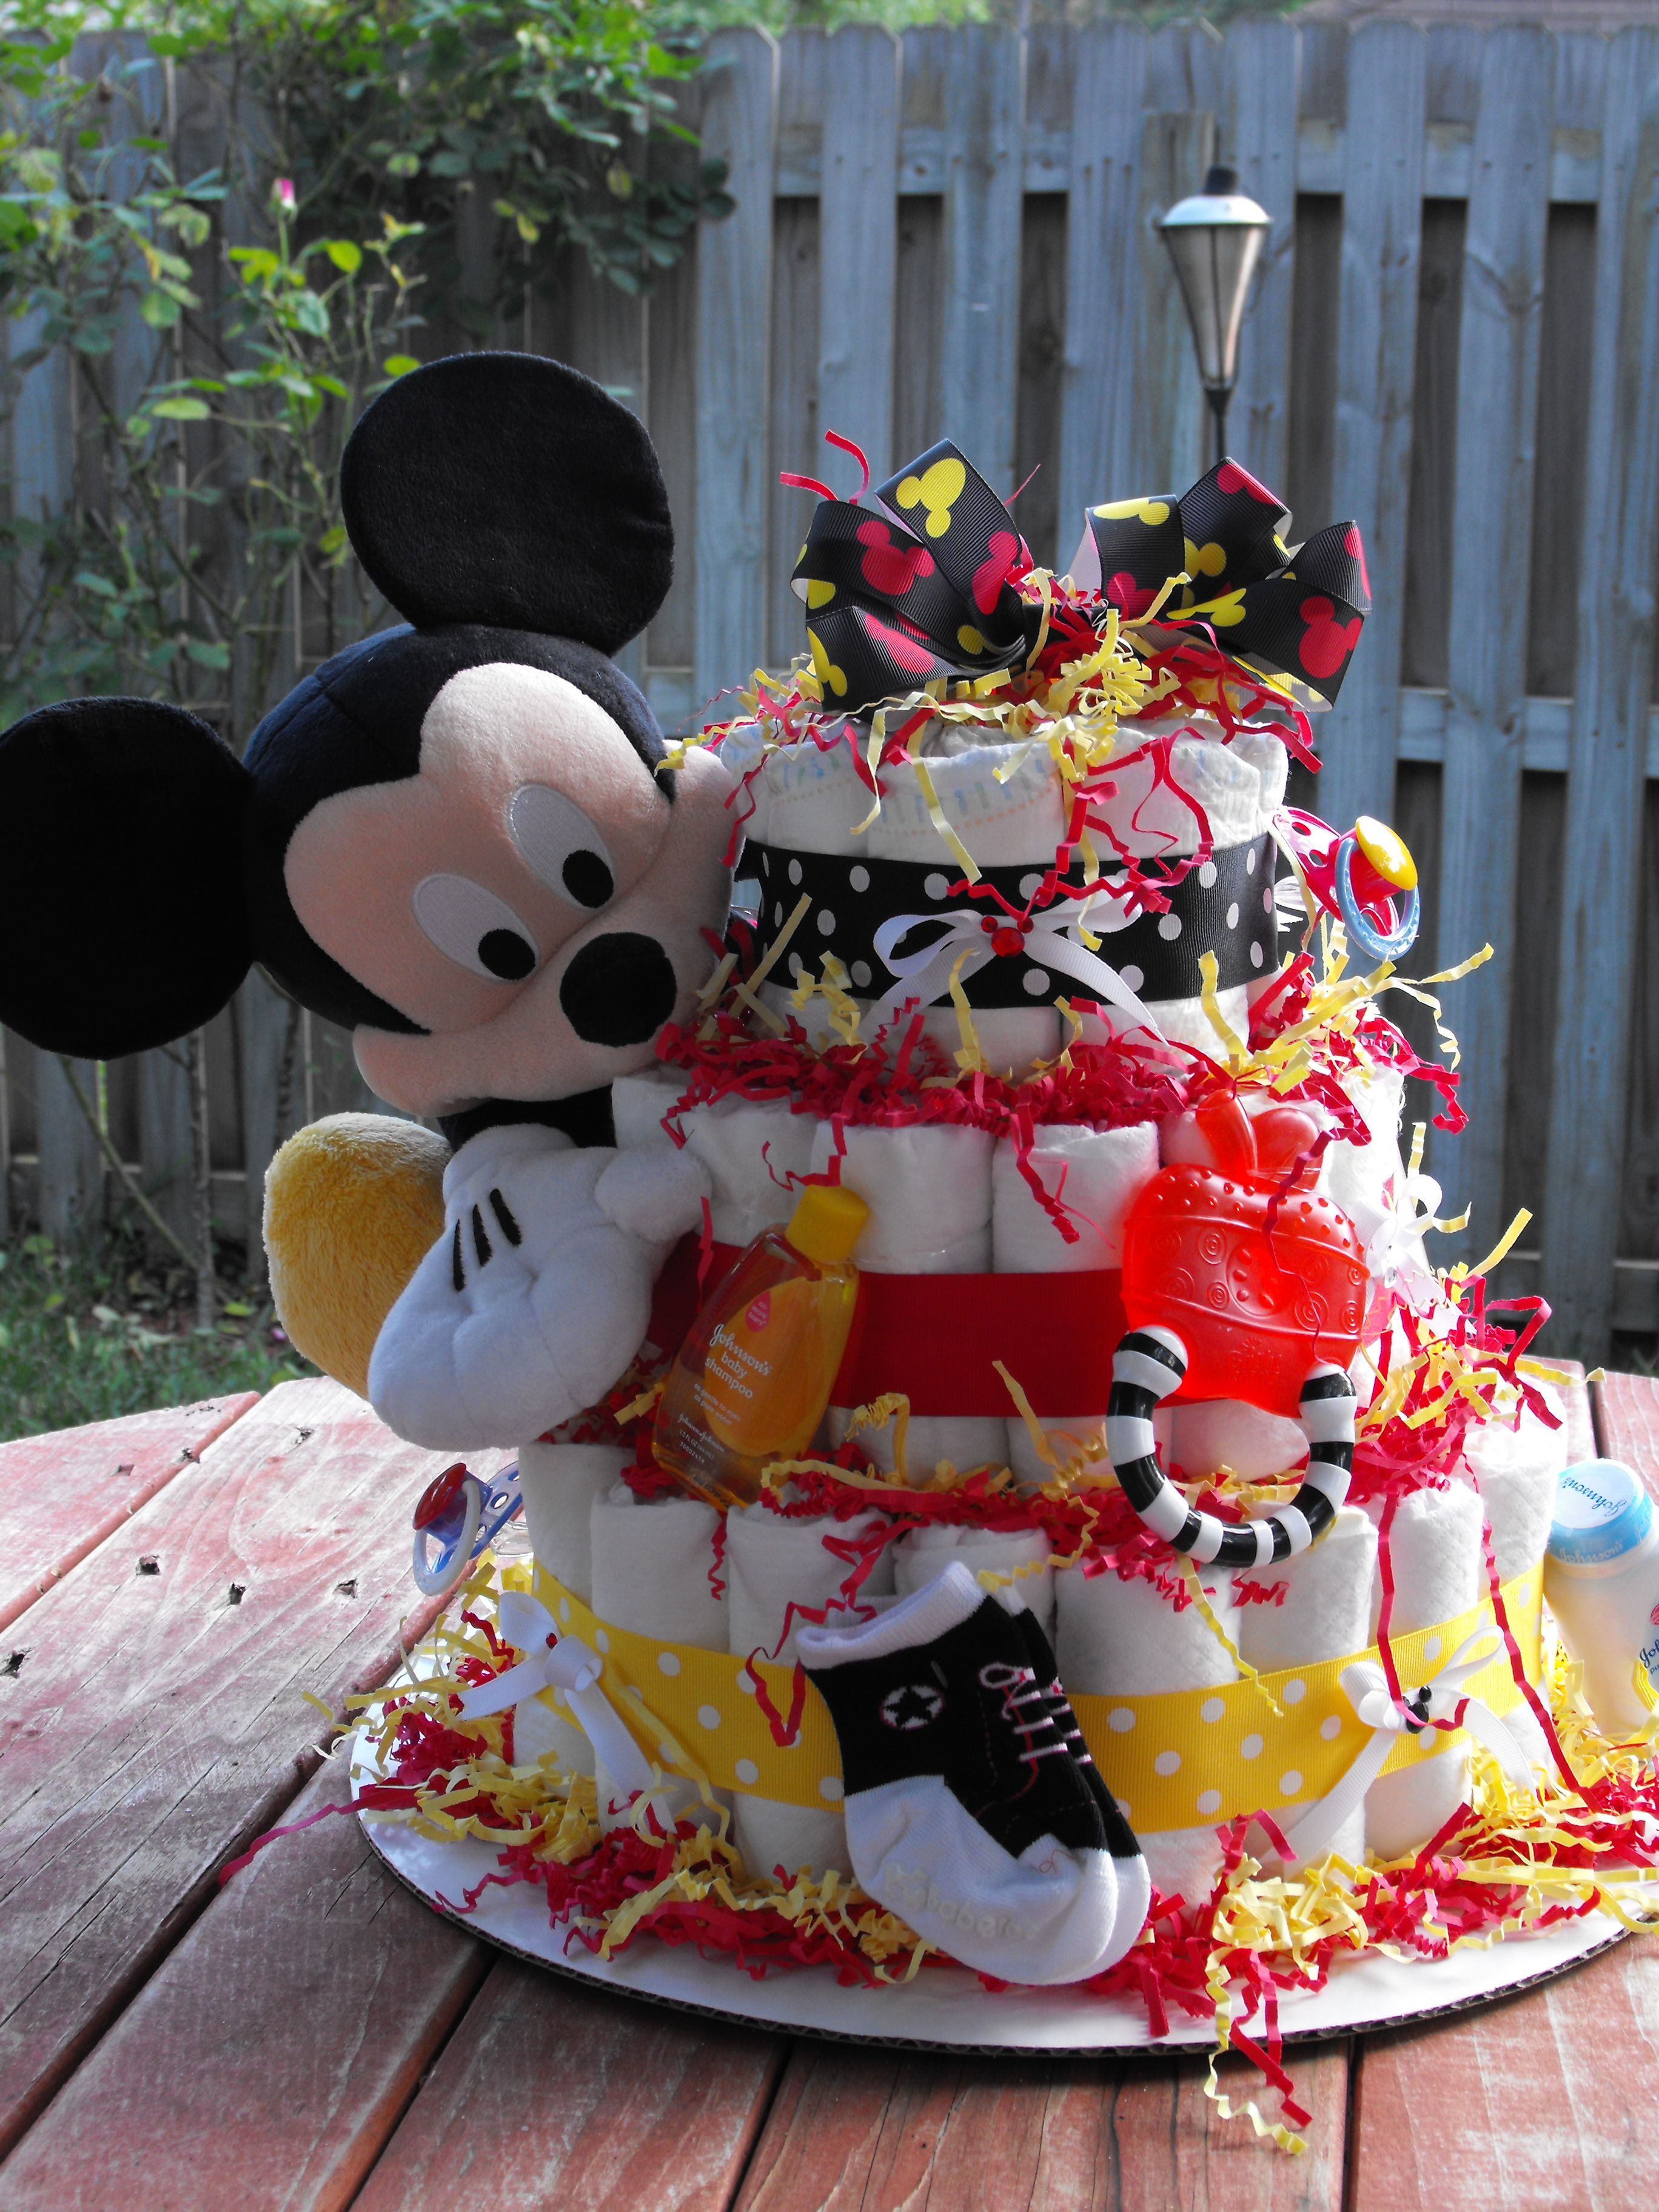 Mickey Mouse Diaper Cake made with 65 baby diapers and many